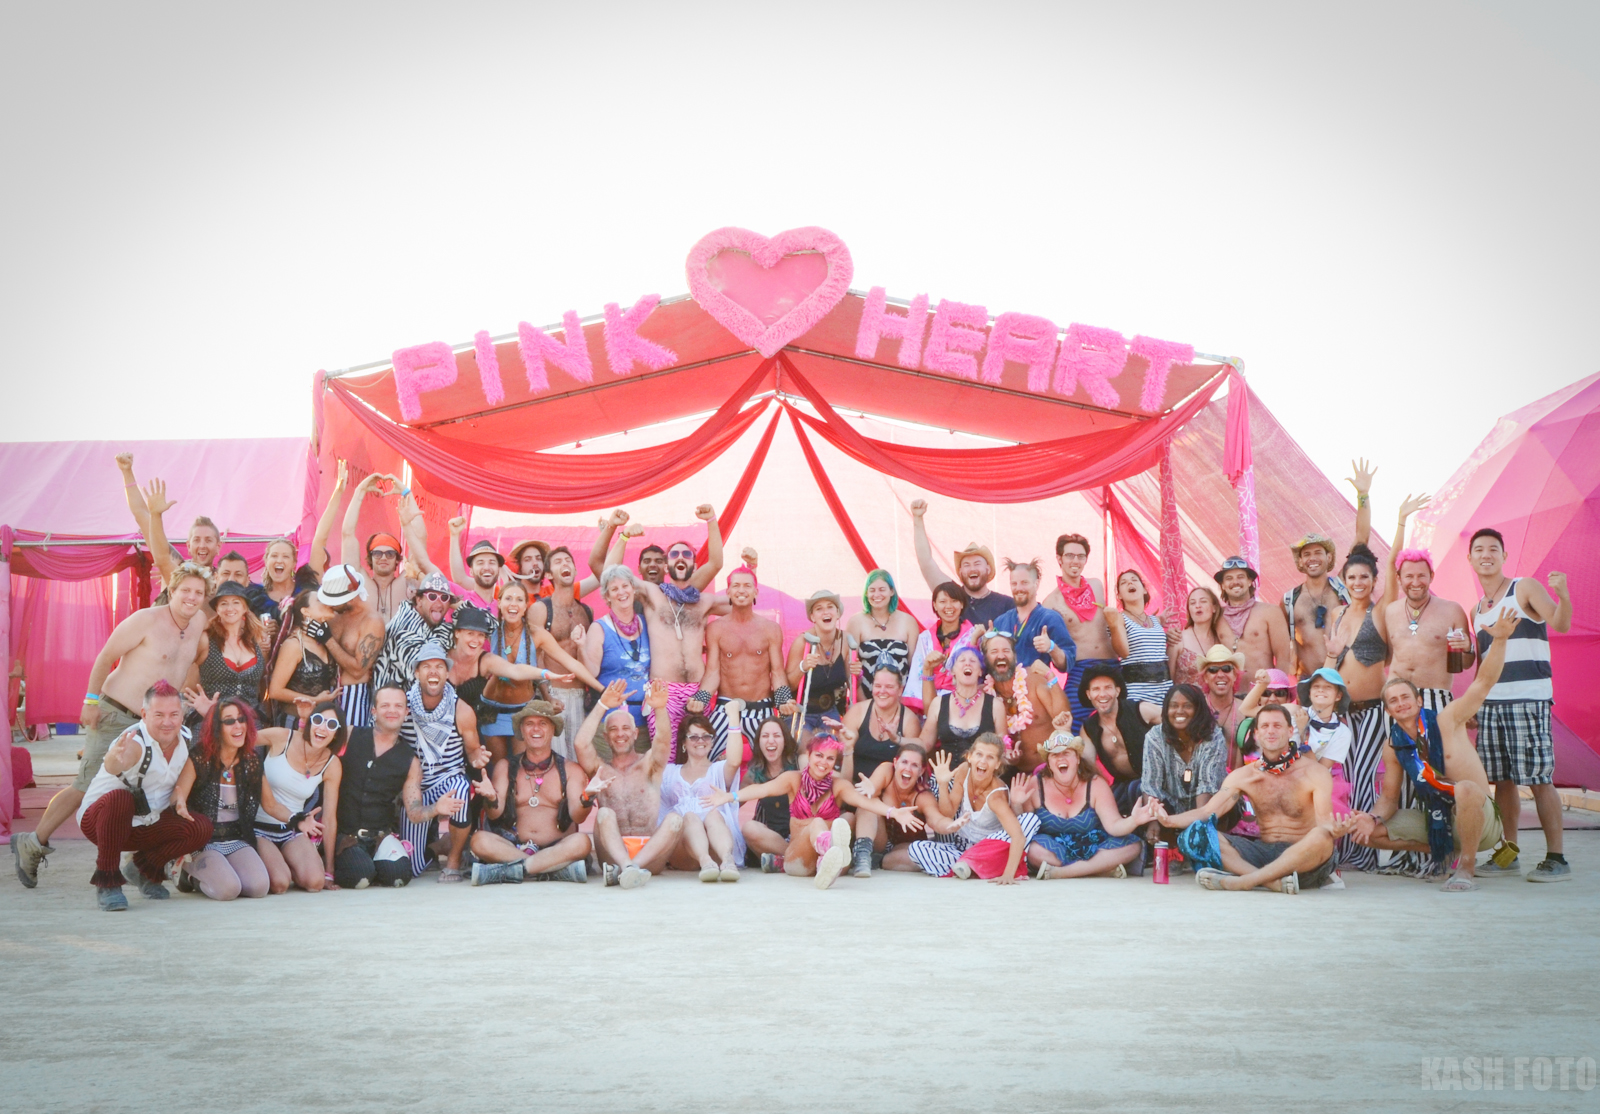 Camp Pink Heart